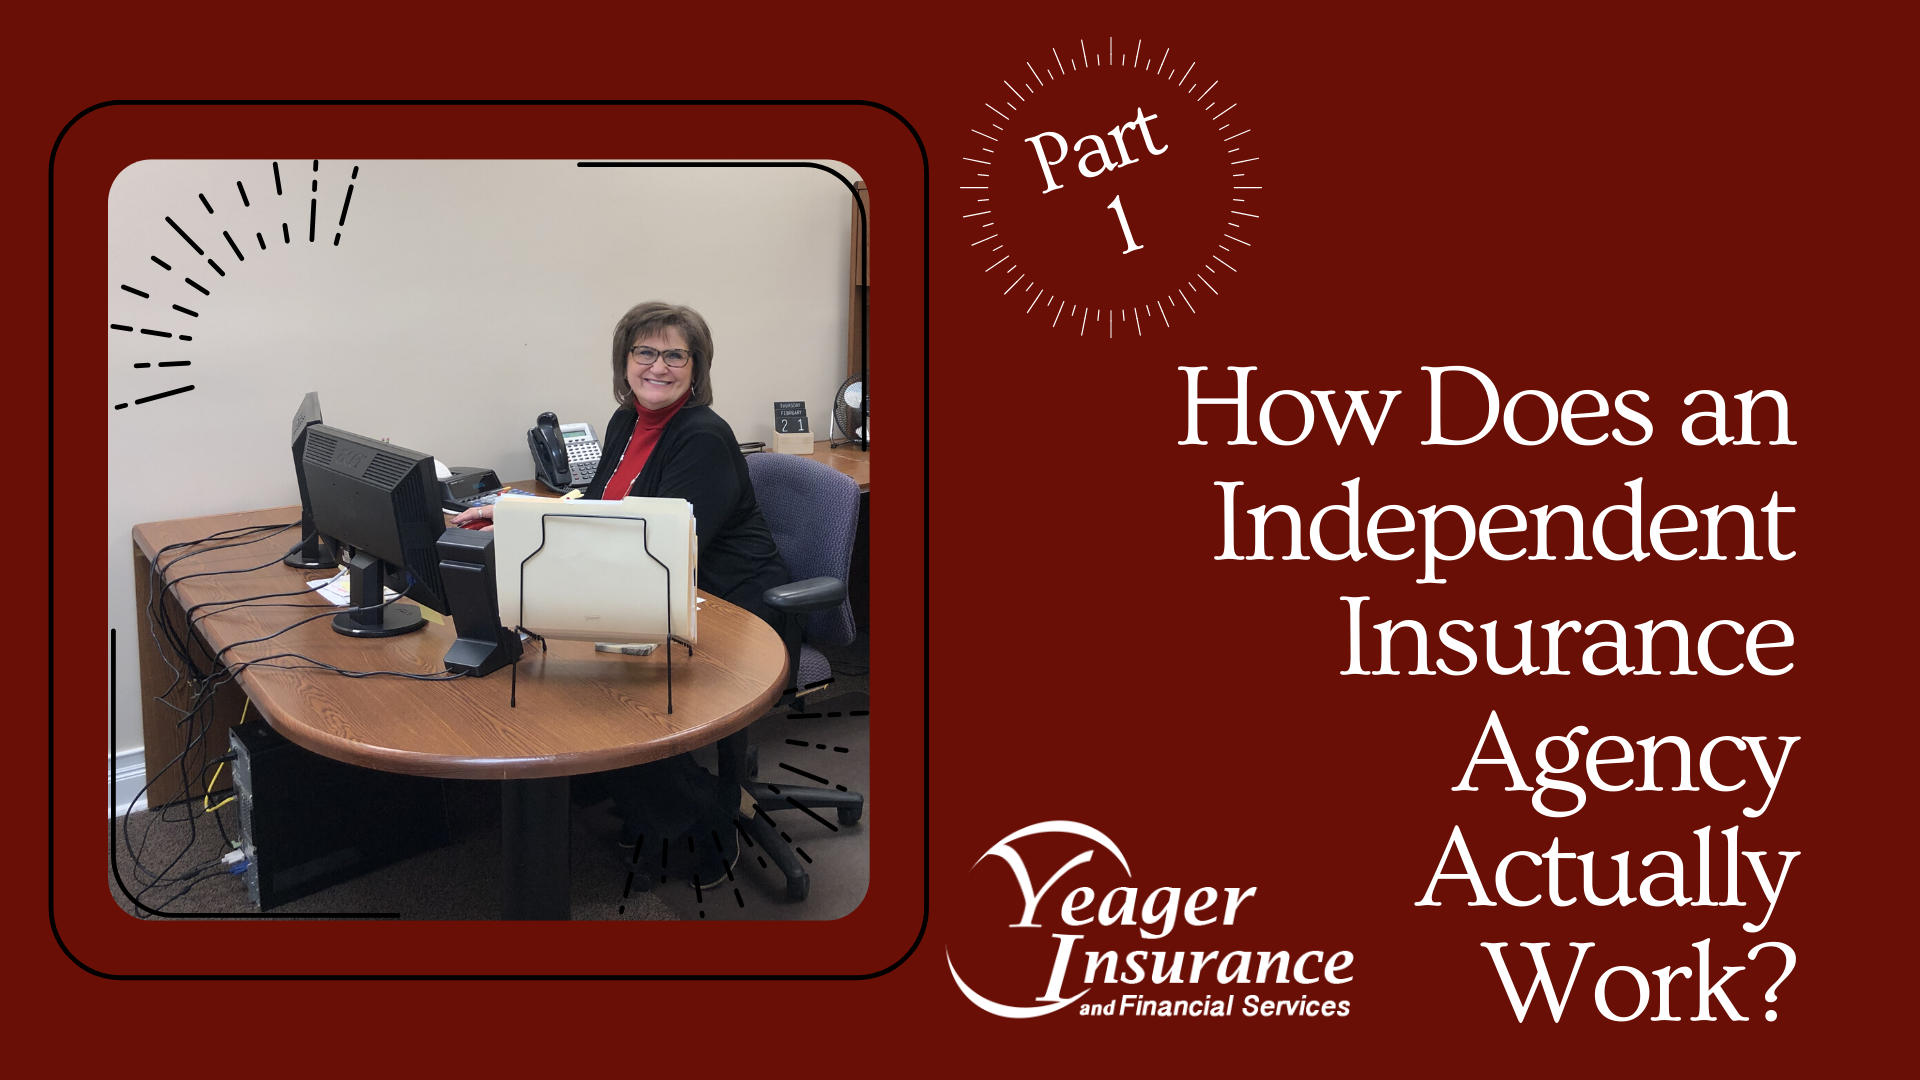 How Does An Independent Insurance Actually Work - Part 1